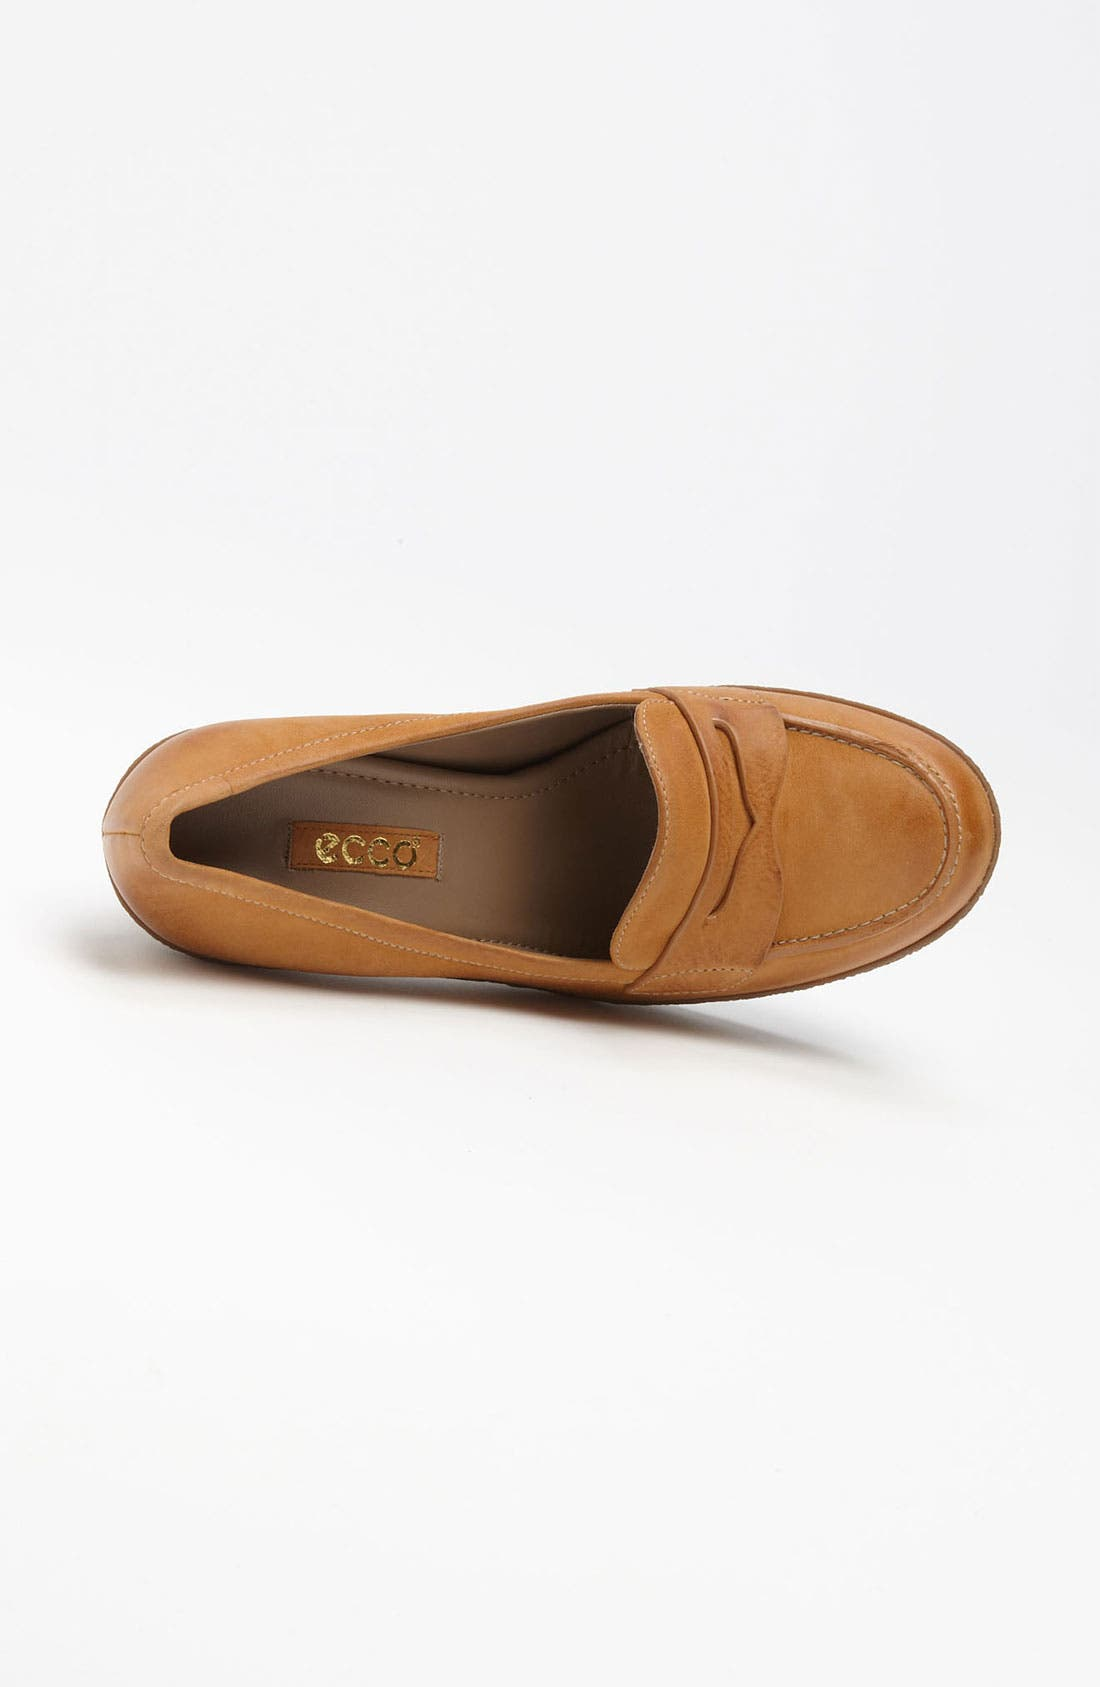 Alternate Image 3  - ECCO 'Normane' Loafer